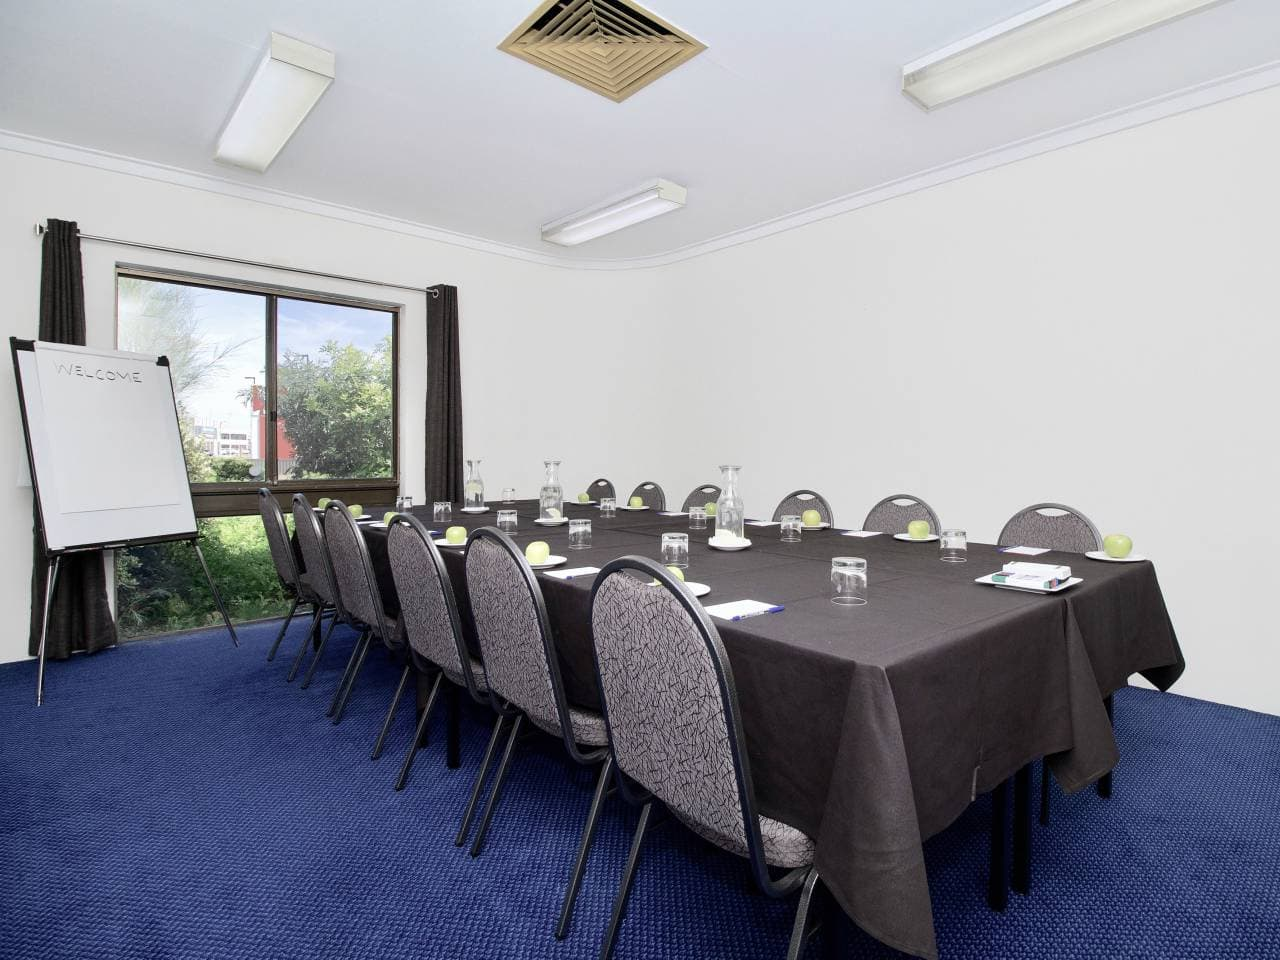 Tables And Chairs Inside The Function Room With Projection Screen